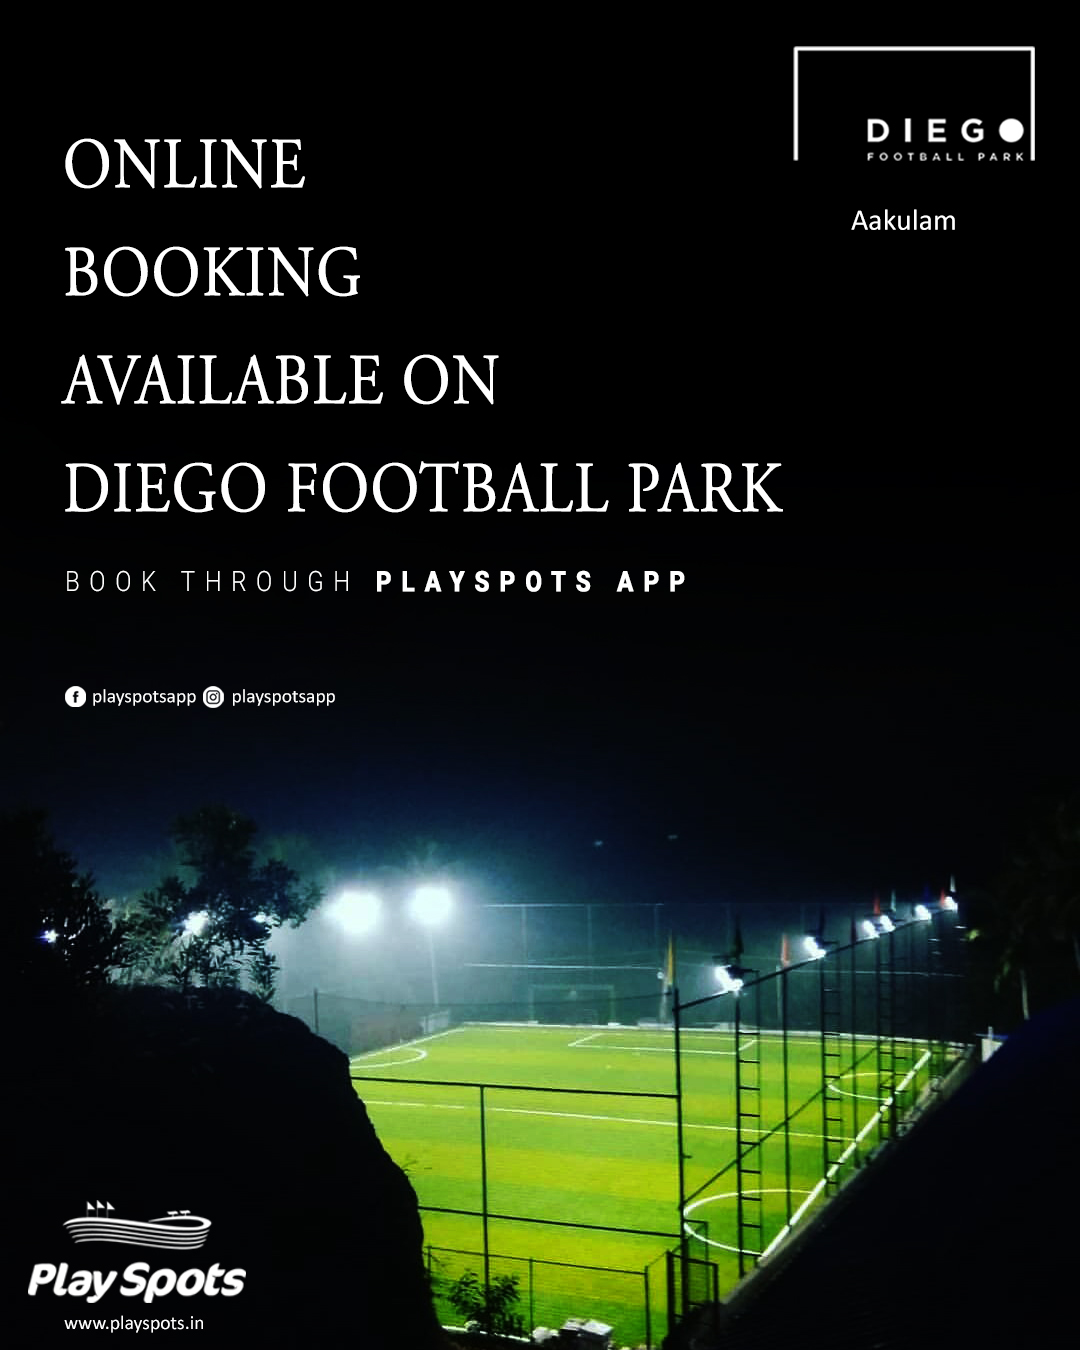 diego football turf, trivandrum first and large football turf , playspots, playspots app, playspotsapp, turf booking application malabar, kerala, kozhikode, trivandrum, tvm, thiruvananthapuram, turfs in trivandrum, turfs in tvm, khel ho football turf booking app, khel ho football turf booking application,